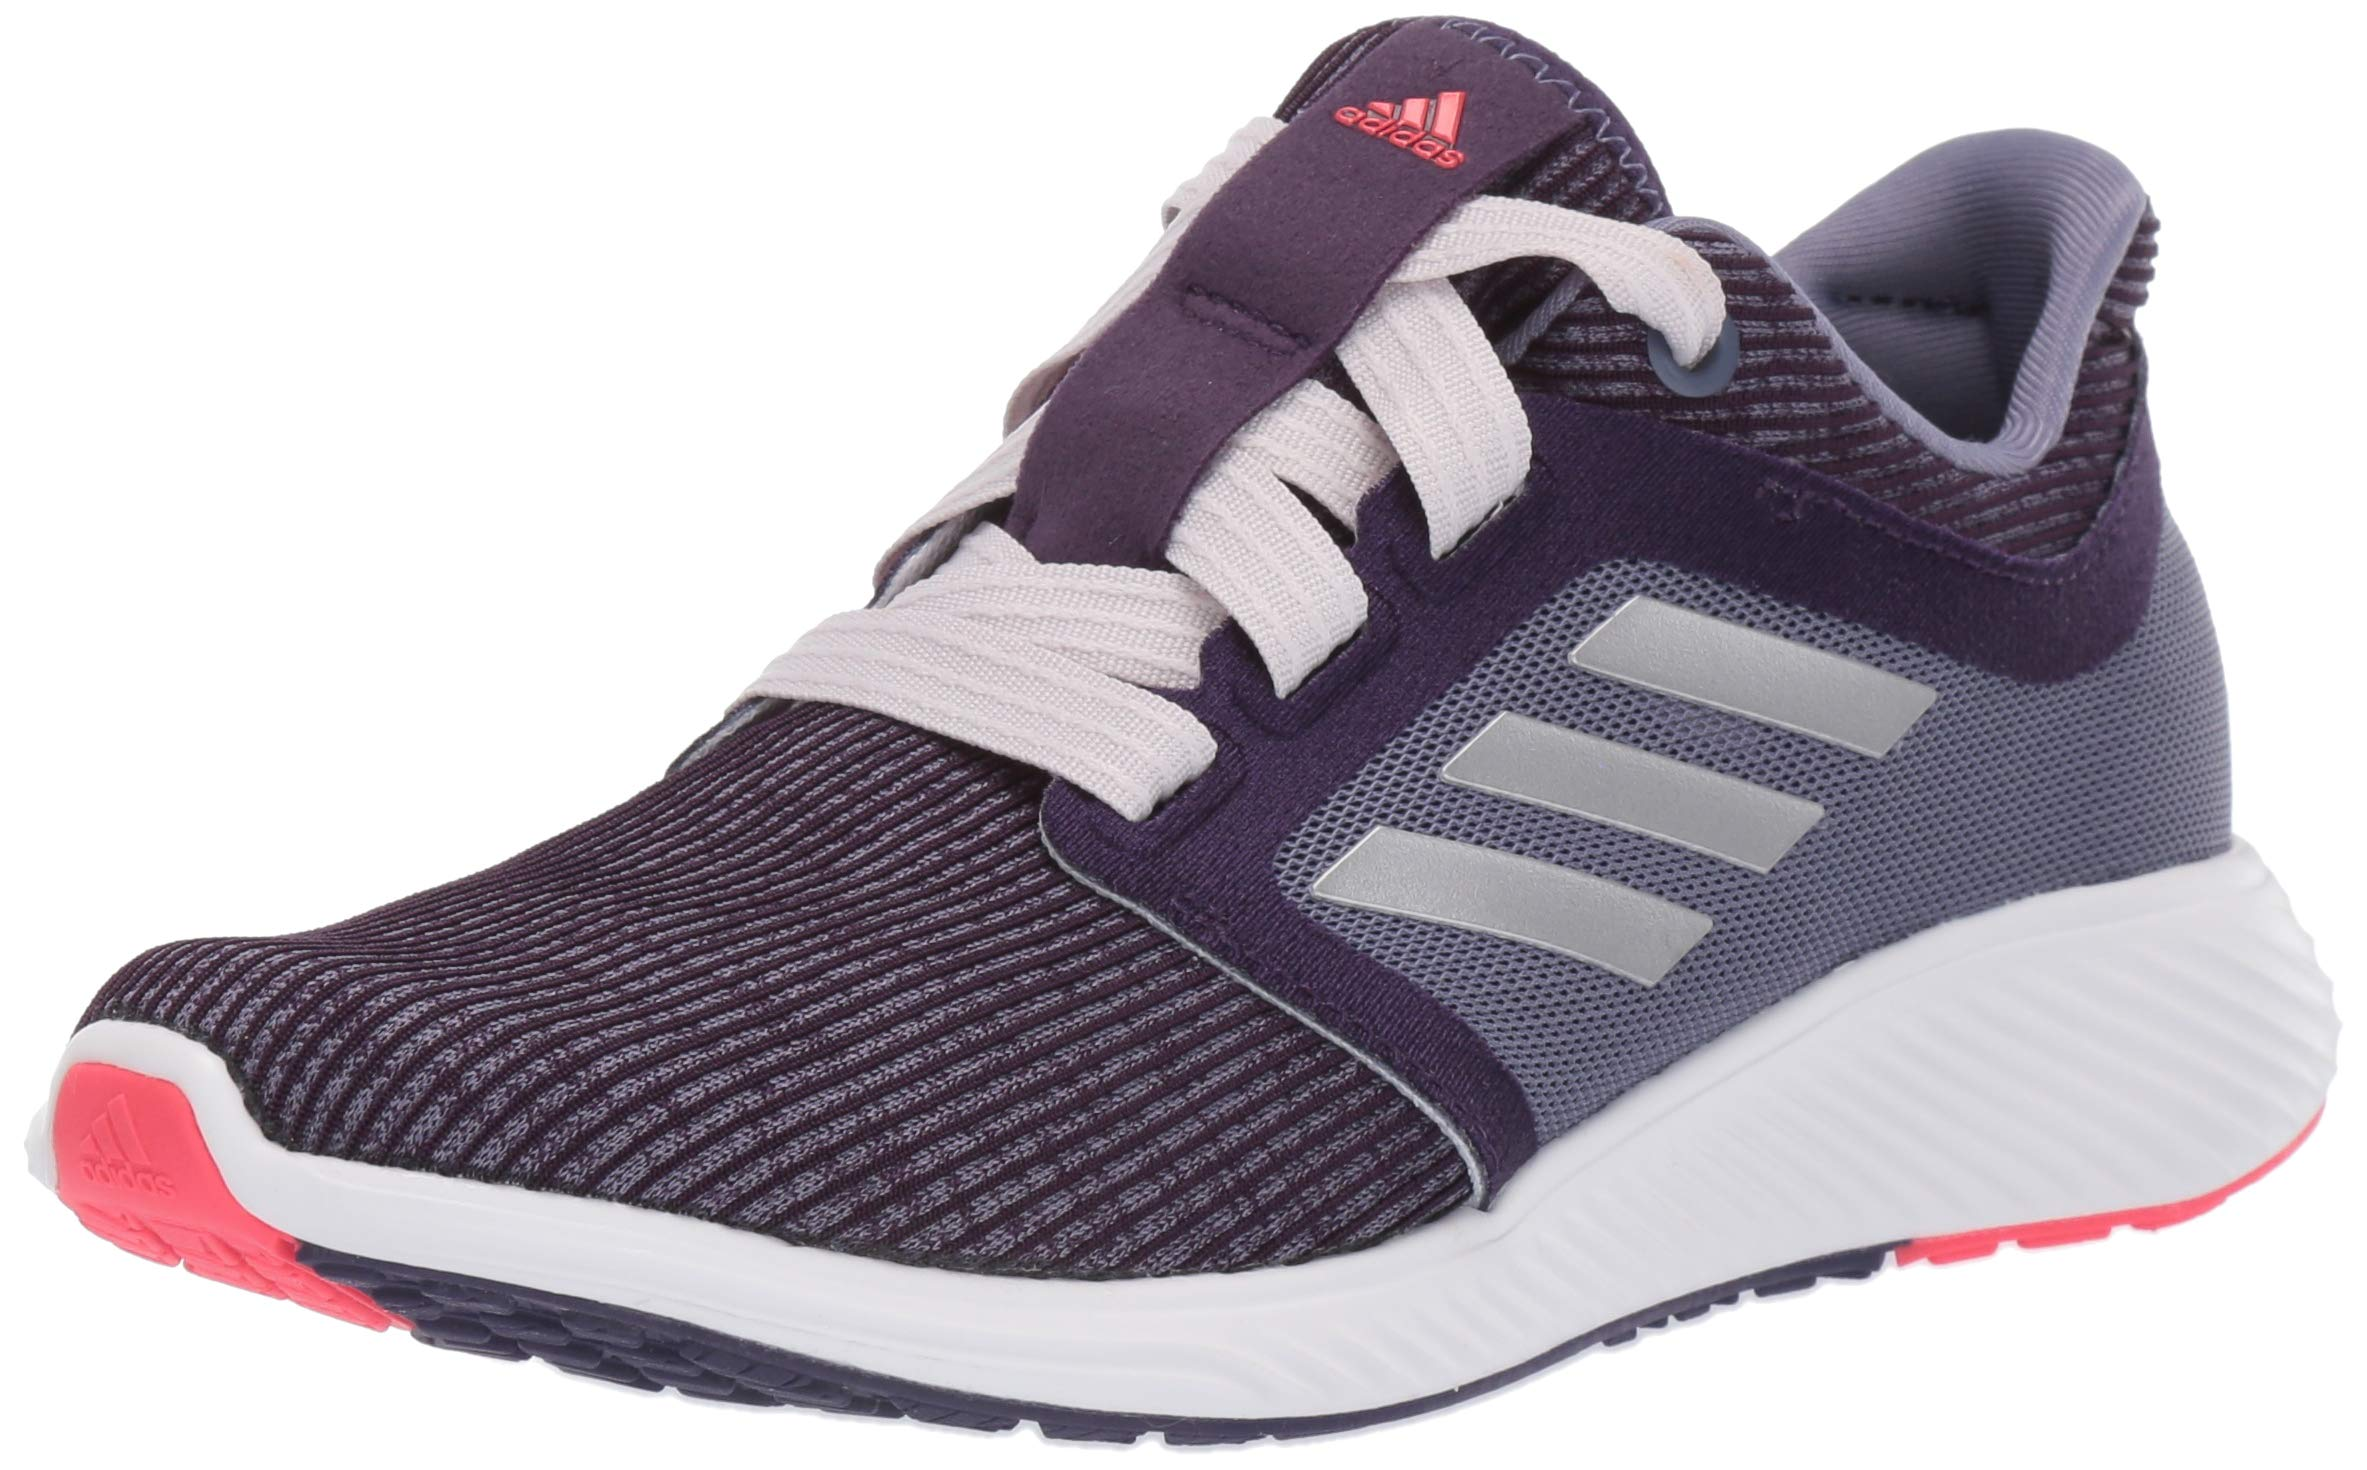 adidas Women's Edge Lux 3, Legend Purple/raw Indigo/Shock red 5 M US